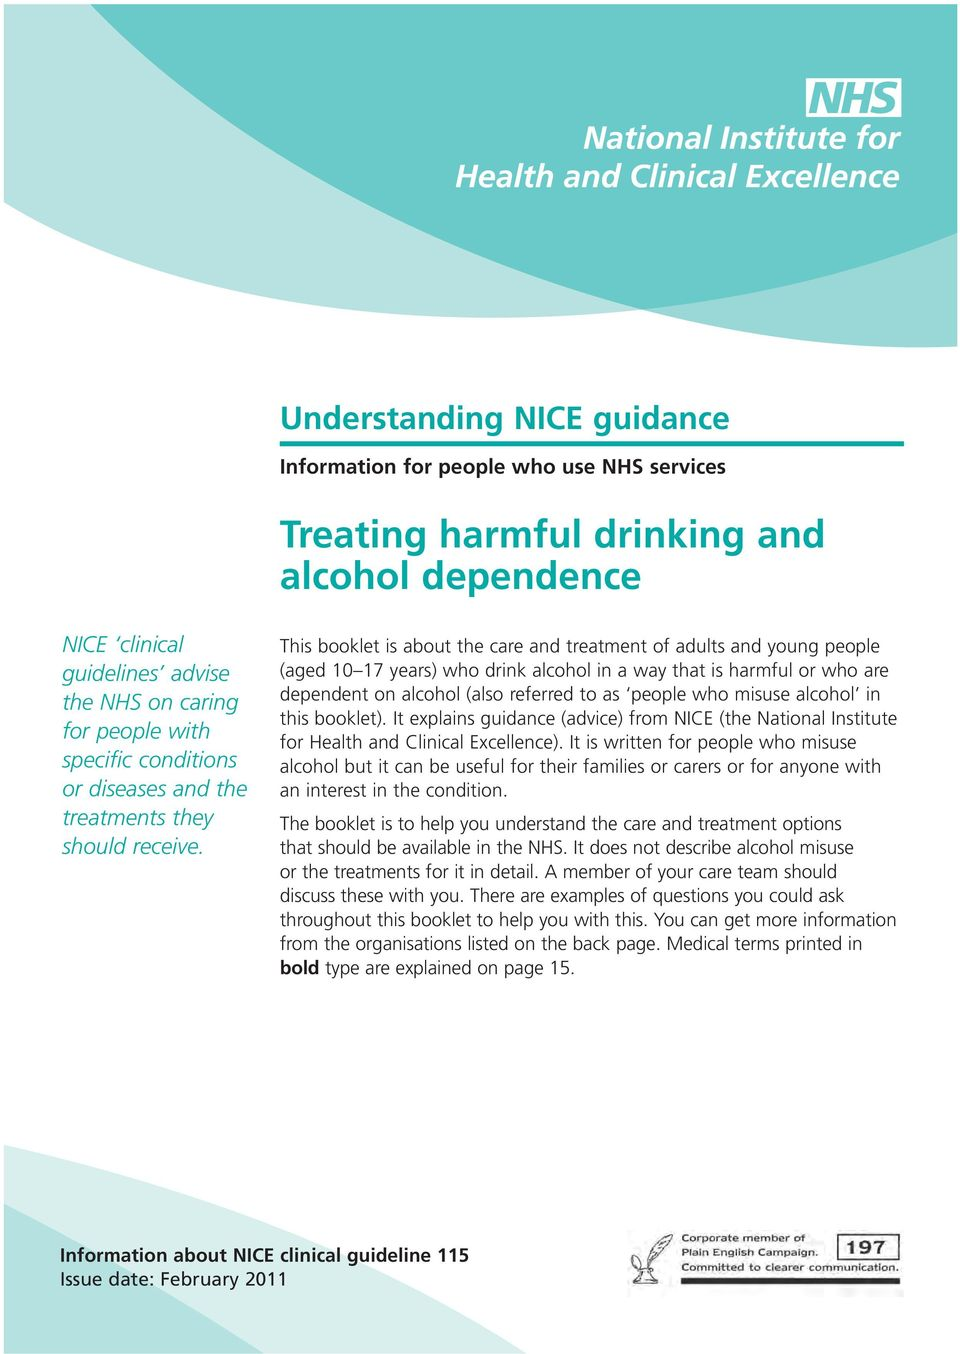 This booklet is about the care and treatment of adults and young people (aged 10 17 years) who drink alcohol in away that is harmful or who are dependent on alcohol (also referred to as people who